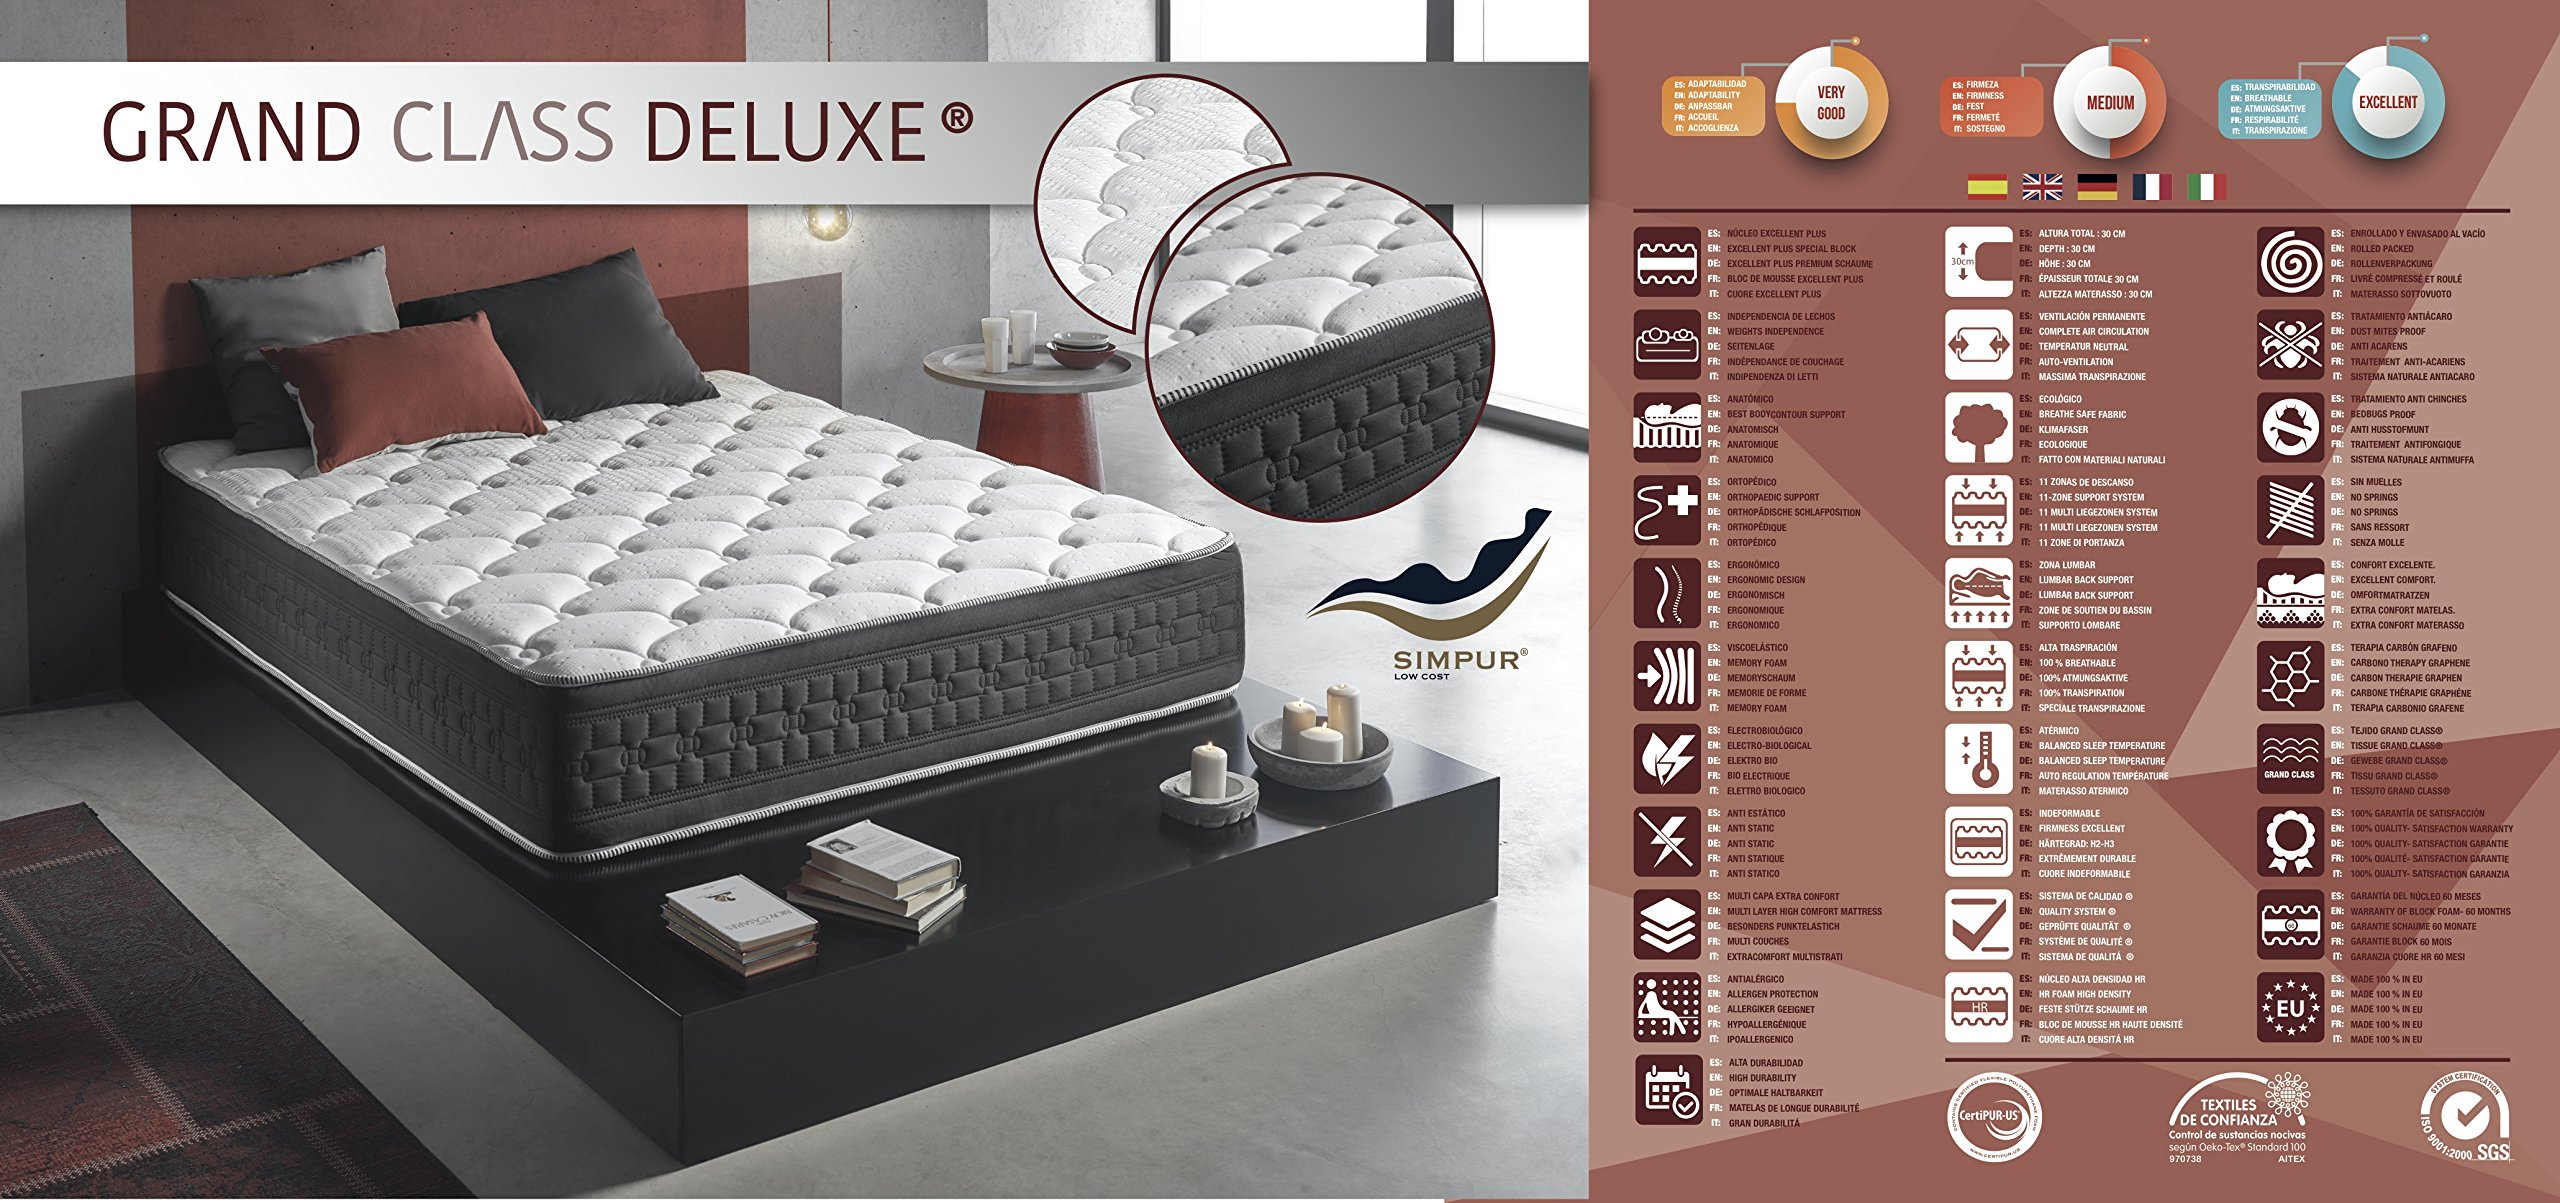 Total Relax Materassi.Simpur Relax Luxury Soothing 11 Zone Memory Foam Mattress